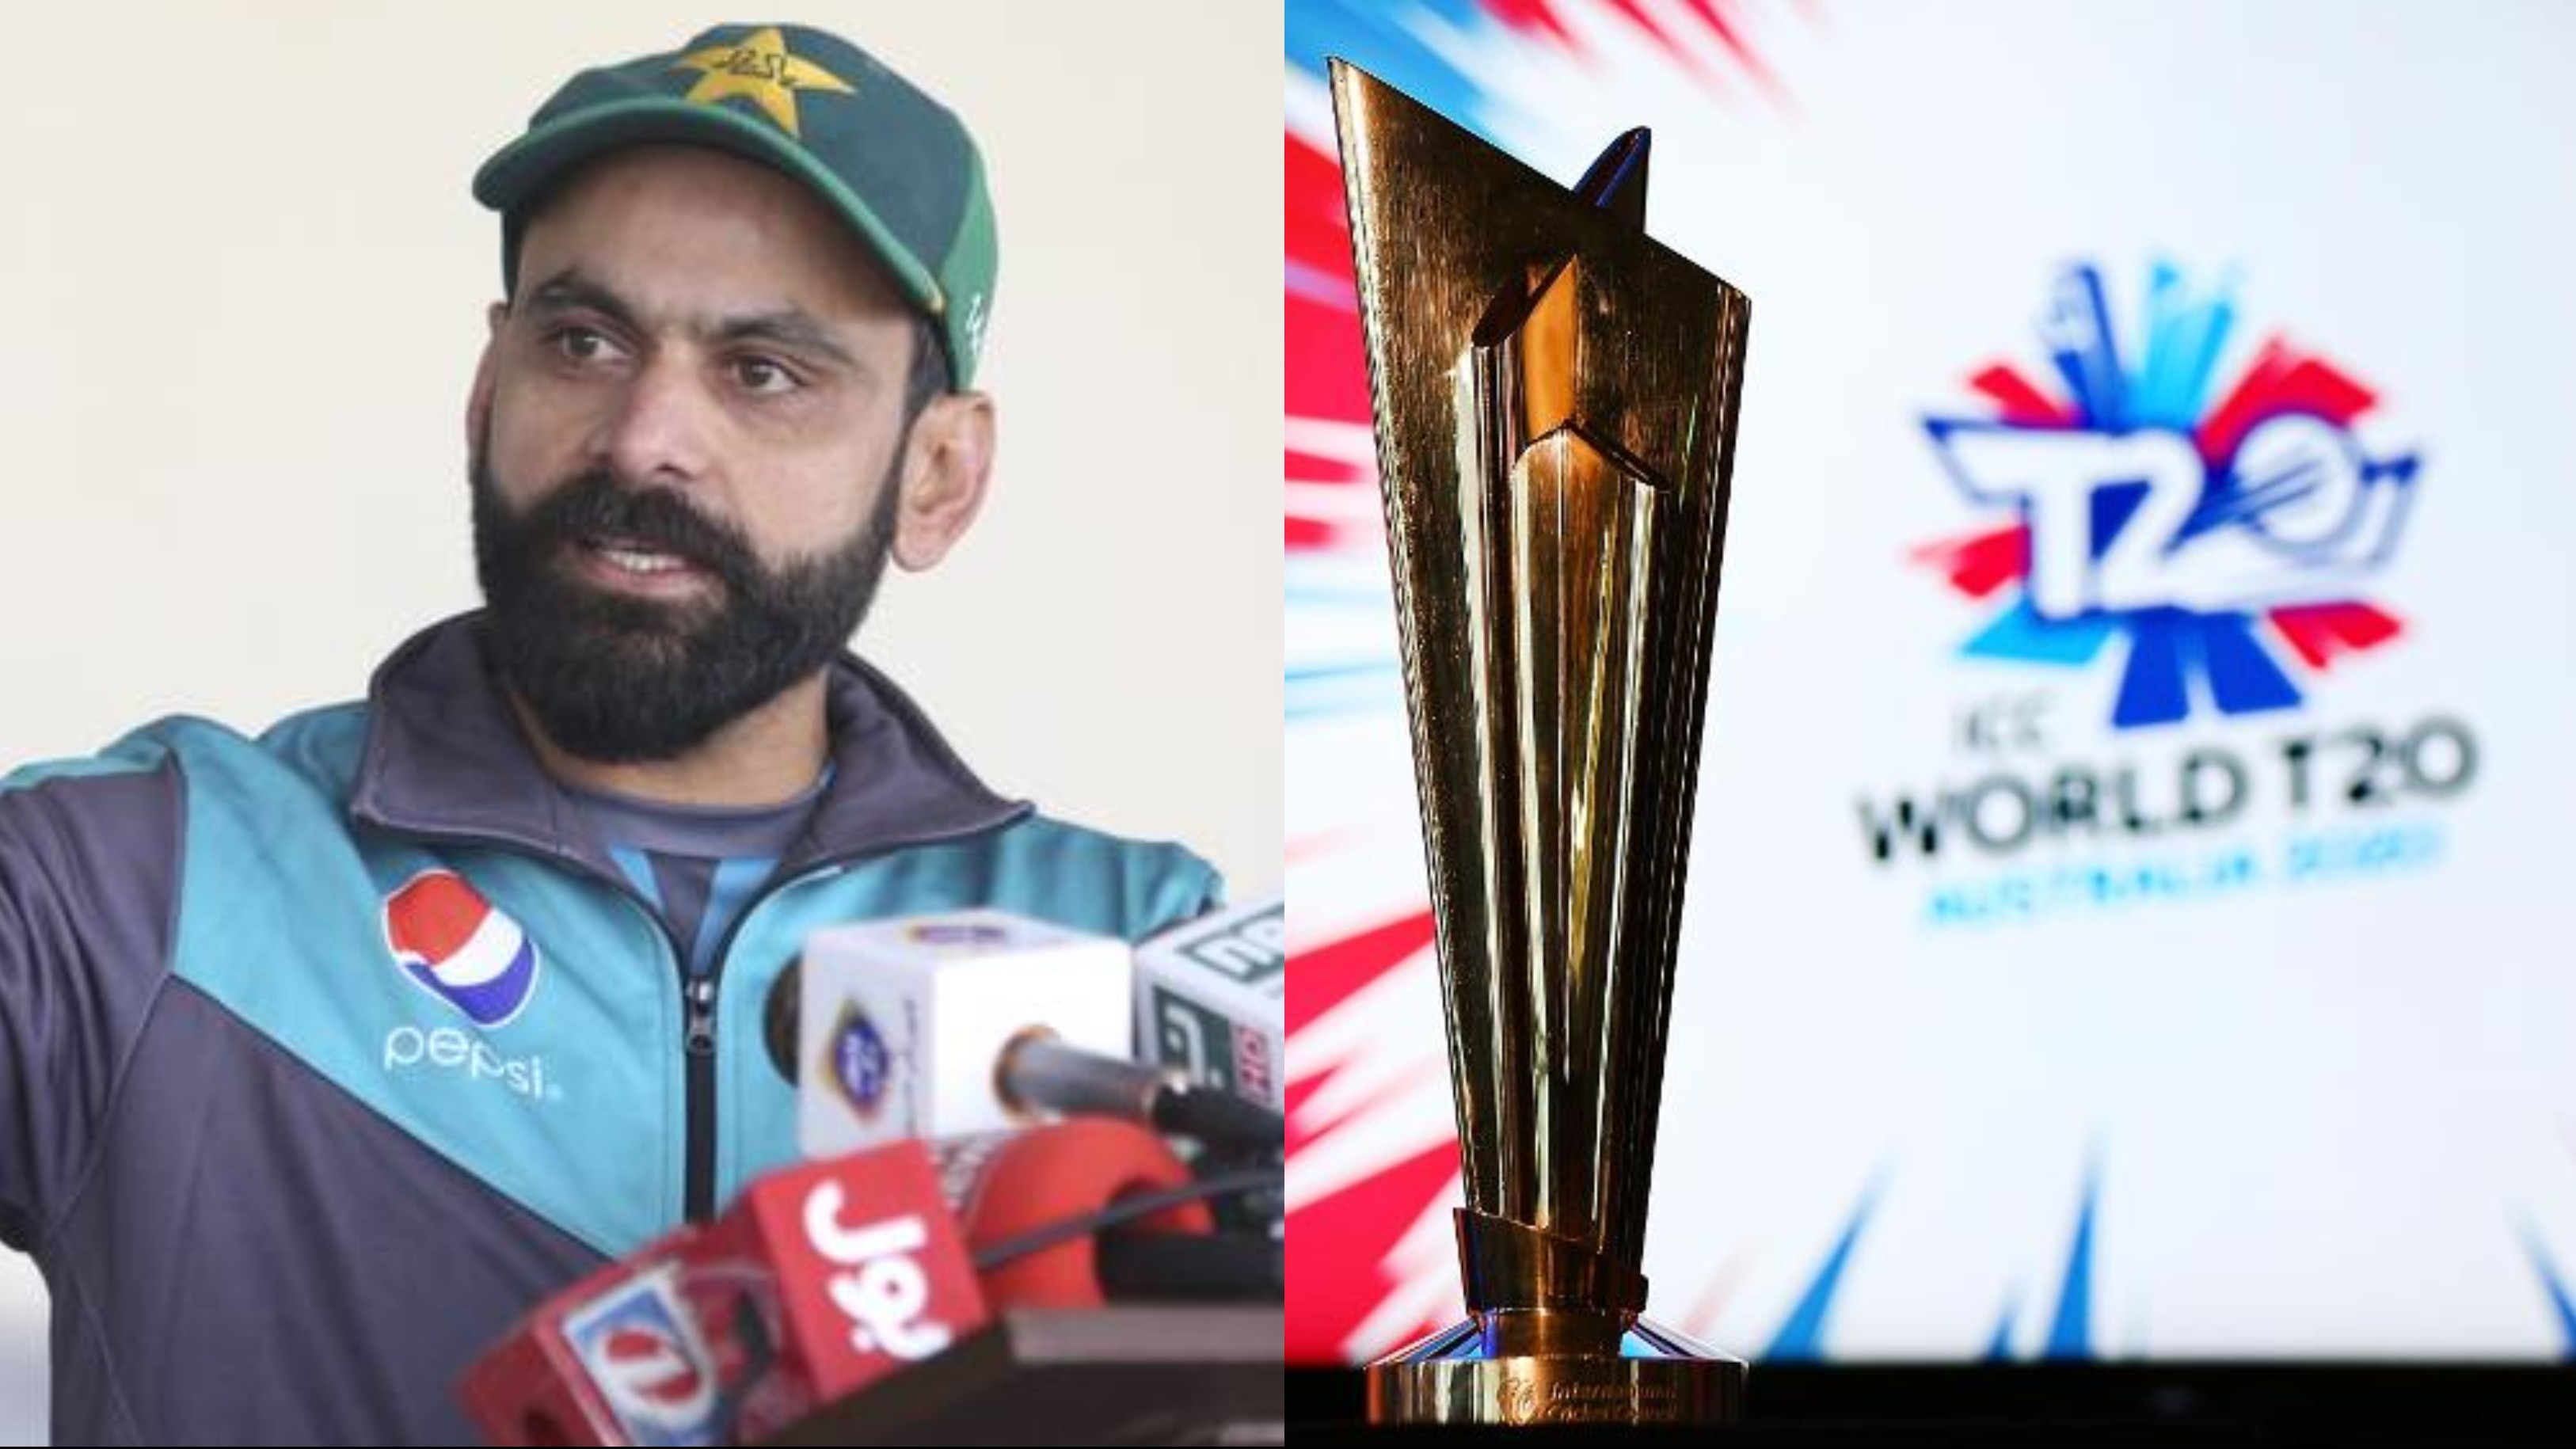 T20WC 2020: Mohammad Hafeez announces that he'll retire after ICC T20 World Cup